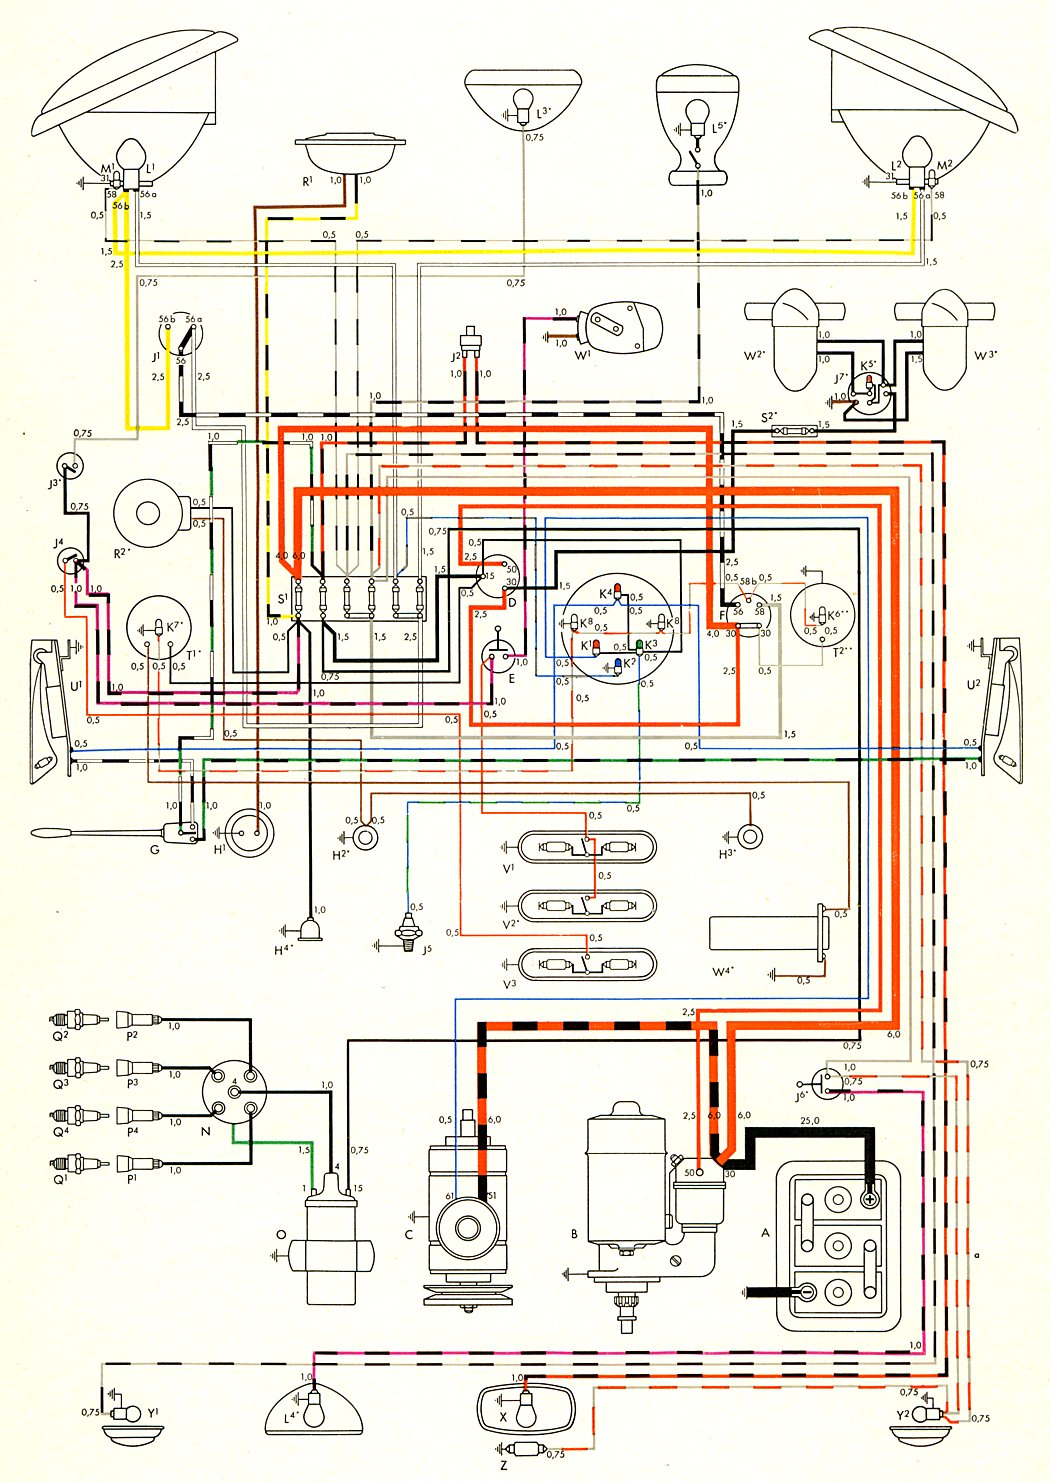 1958 vw bus wiring diagram example electrical wiring diagram u2022 rh cranejapan co 1975 vw beetle wiring diagram 2001 Volkswagen Beetle Wiring Diagram